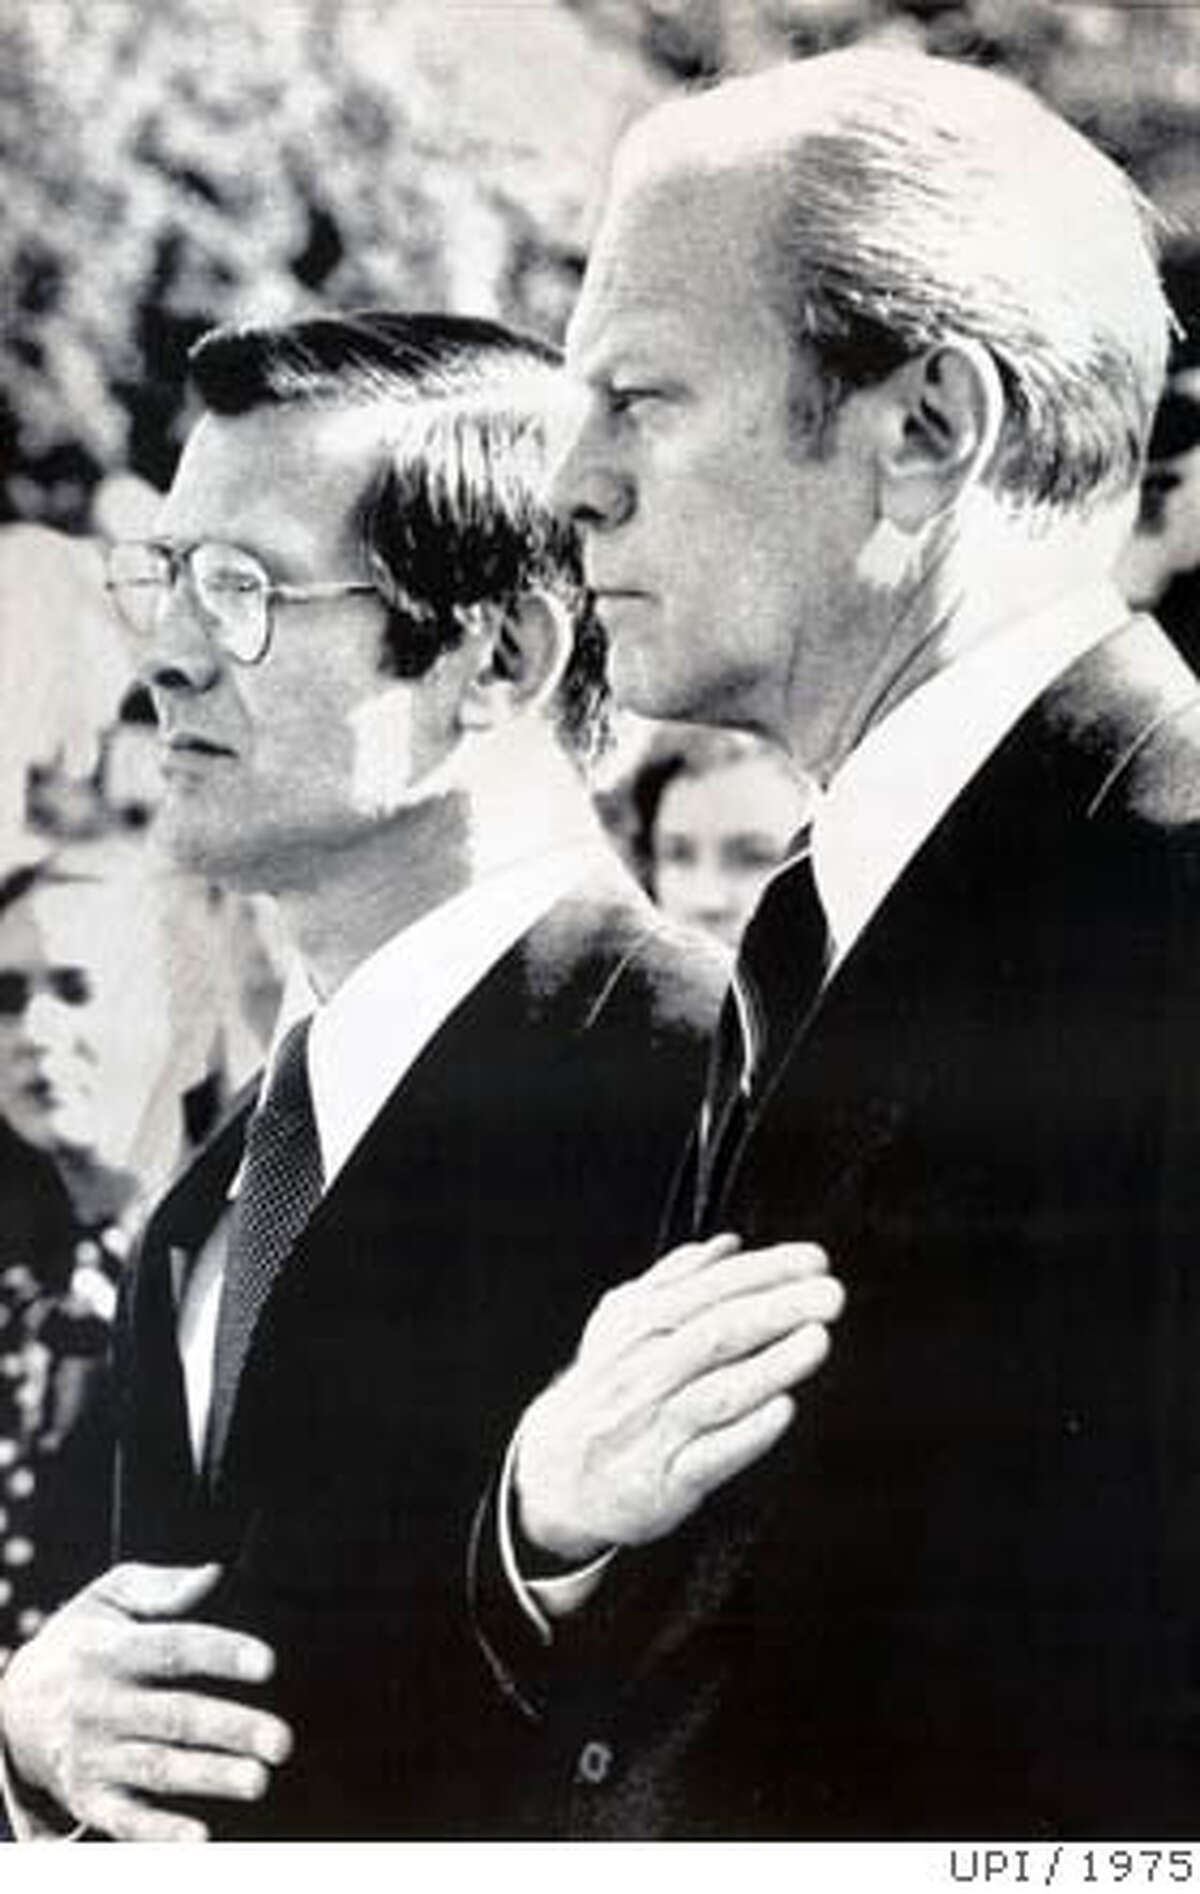 31days16.jpg President Gerald Ford, right, at the swearing-in ceremony for Secretary of Defense Donald Rumsfeld, left, on November 20, 1975. Rumsfeld, former White House chief of staff, was nominated after Ford dismissed James R. Schlesinger. PHOTO CREDIT: UPI